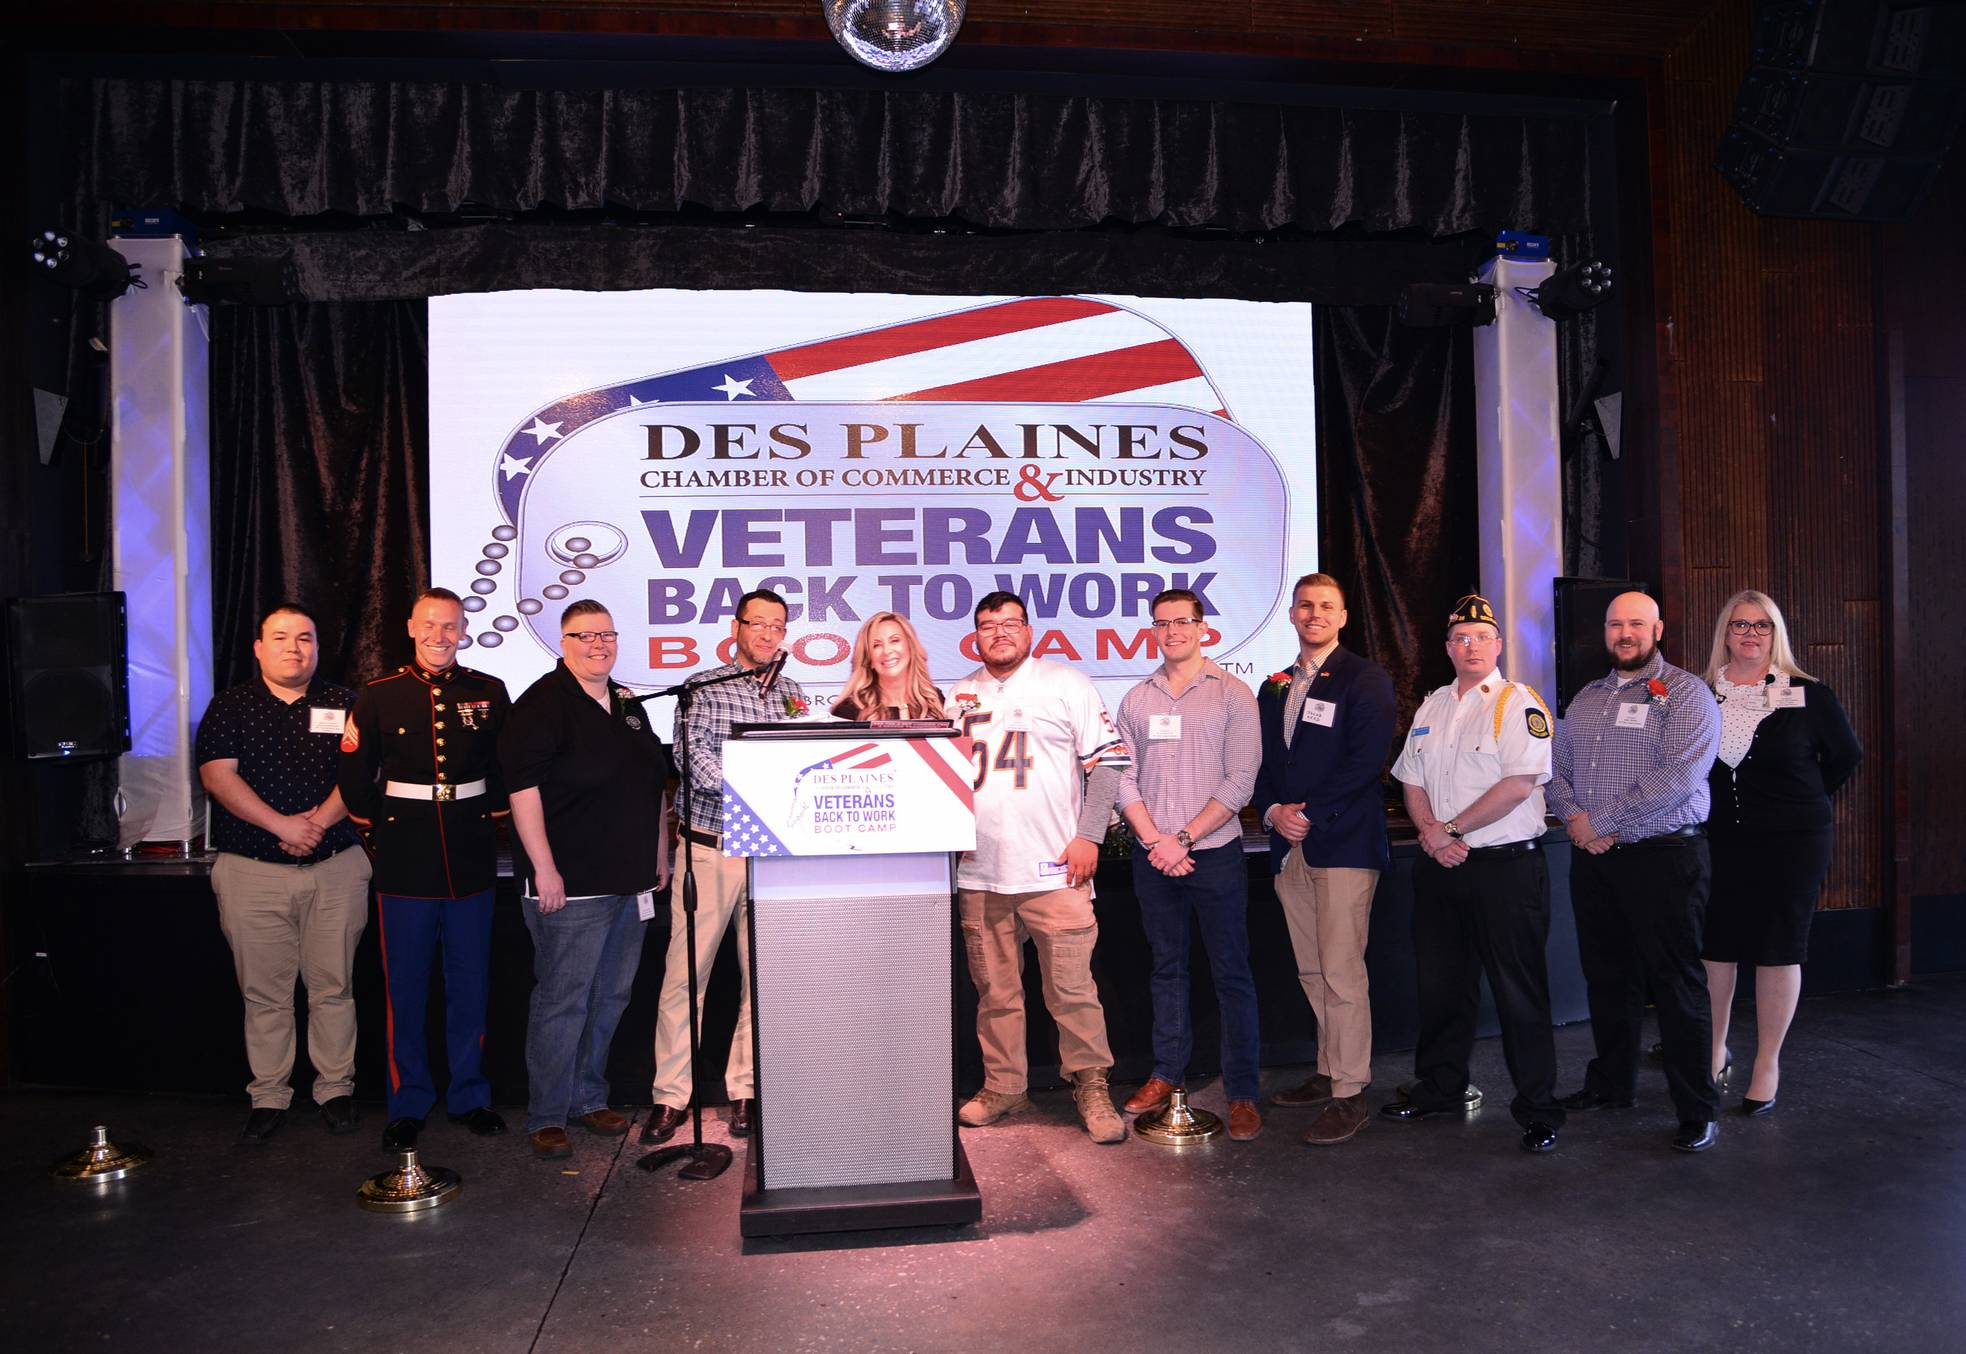 Among those on hand for the announcement of a third year of the Back-to-work Boot Camp were, from left, 2017 Veteran Boot Camp graduate Jason Rodriquez, 2018 graduate Joseph Lutsch, Shannon Lechner, Jaime Cruz, Executive Director of Des Plaines Chamber Andrea Biwer, 2018 graduate Angel Santoyo, 2017 graduate Evan Franck, Jacob Reed, Ryan Flurkey, Rory Patrick and Marne Deithorn.